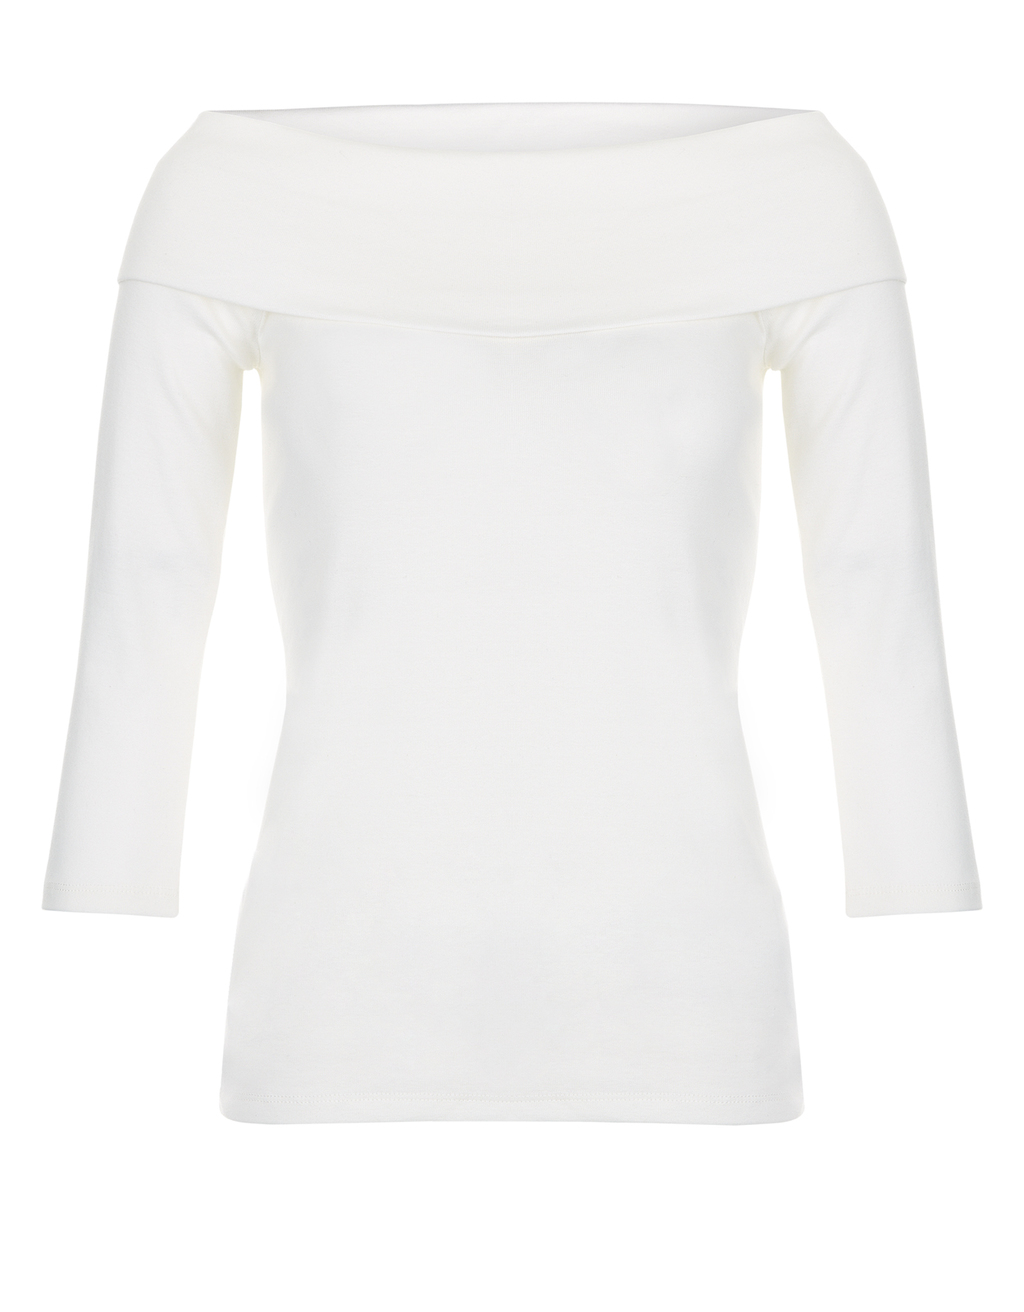 Jezabella Bardot Top - neckline: slash/boat neckline; pattern: plain; predominant colour: ivory/cream; occasions: casual; length: standard; style: top; fibres: cotton - 100%; fit: body skimming; sleeve length: 3/4 length; sleeve style: standard; pattern type: fabric; texture group: jersey - stretchy/drapey; season: s/s 2016; wardrobe: basic